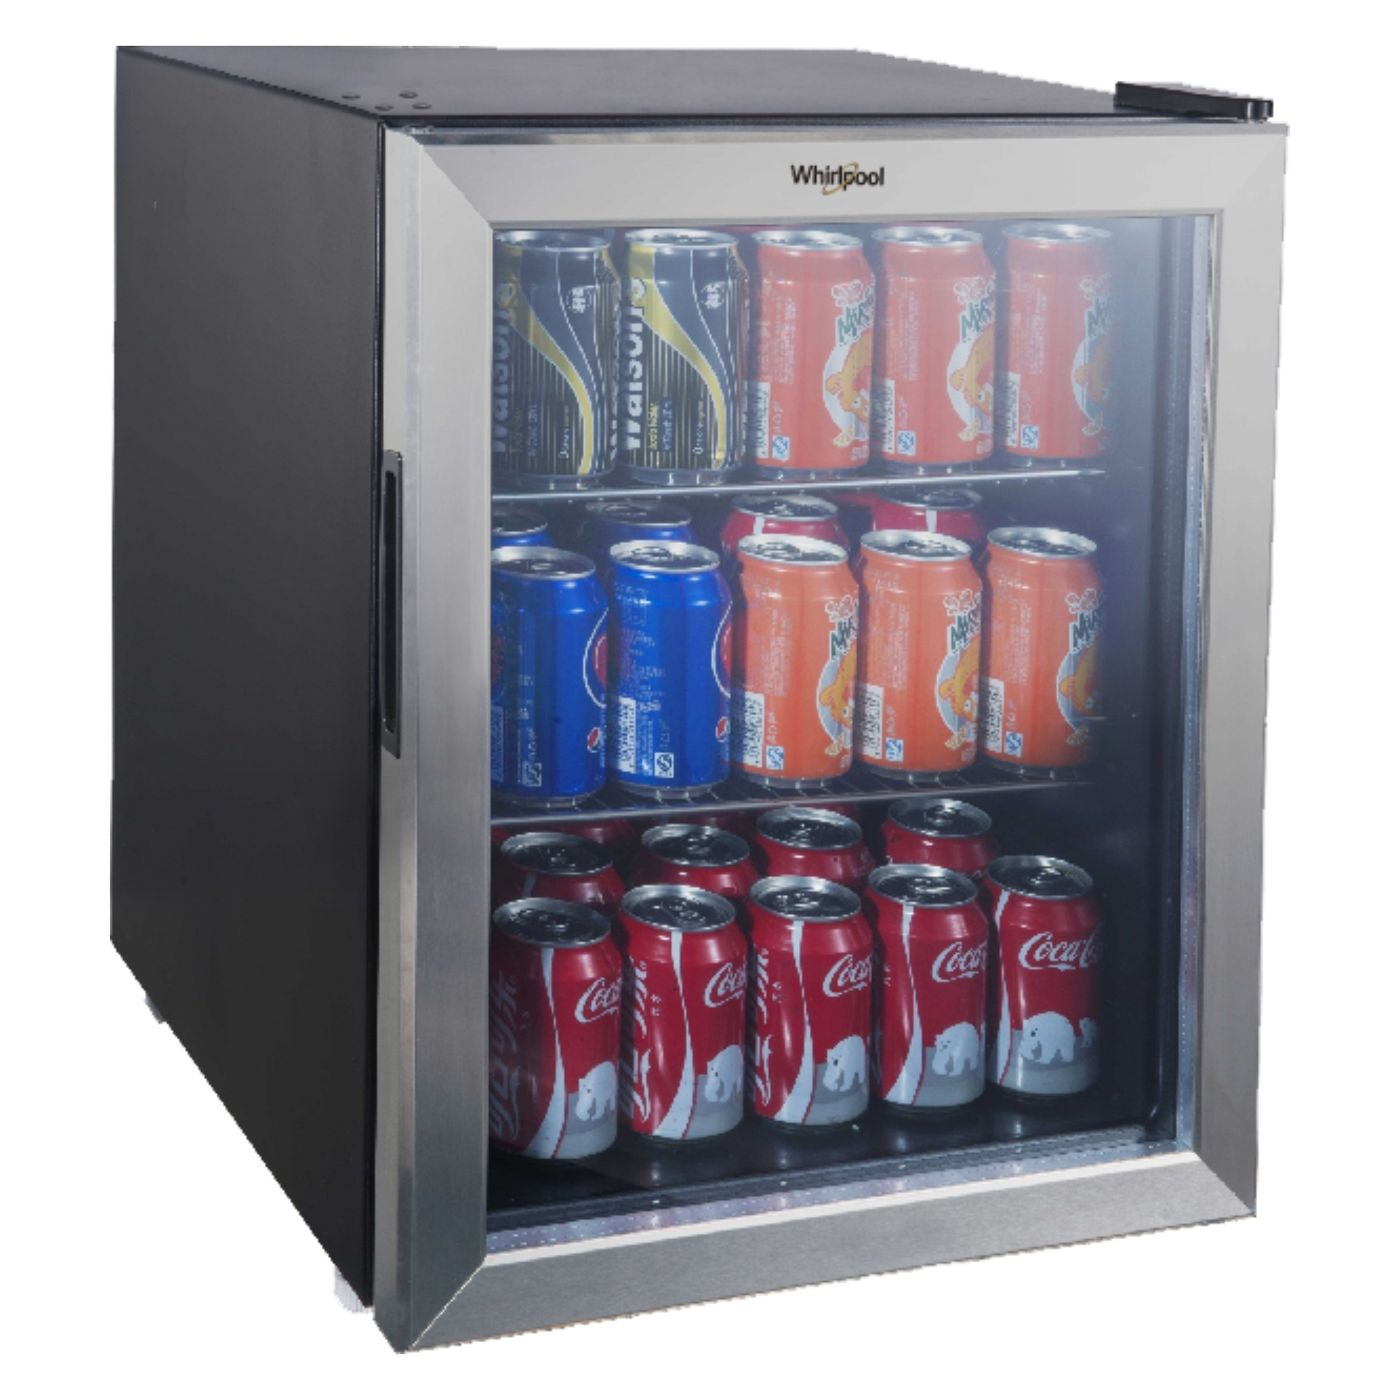 Whirlpool 2.7-cu. ft. Mini Refrigerator Beverage Center